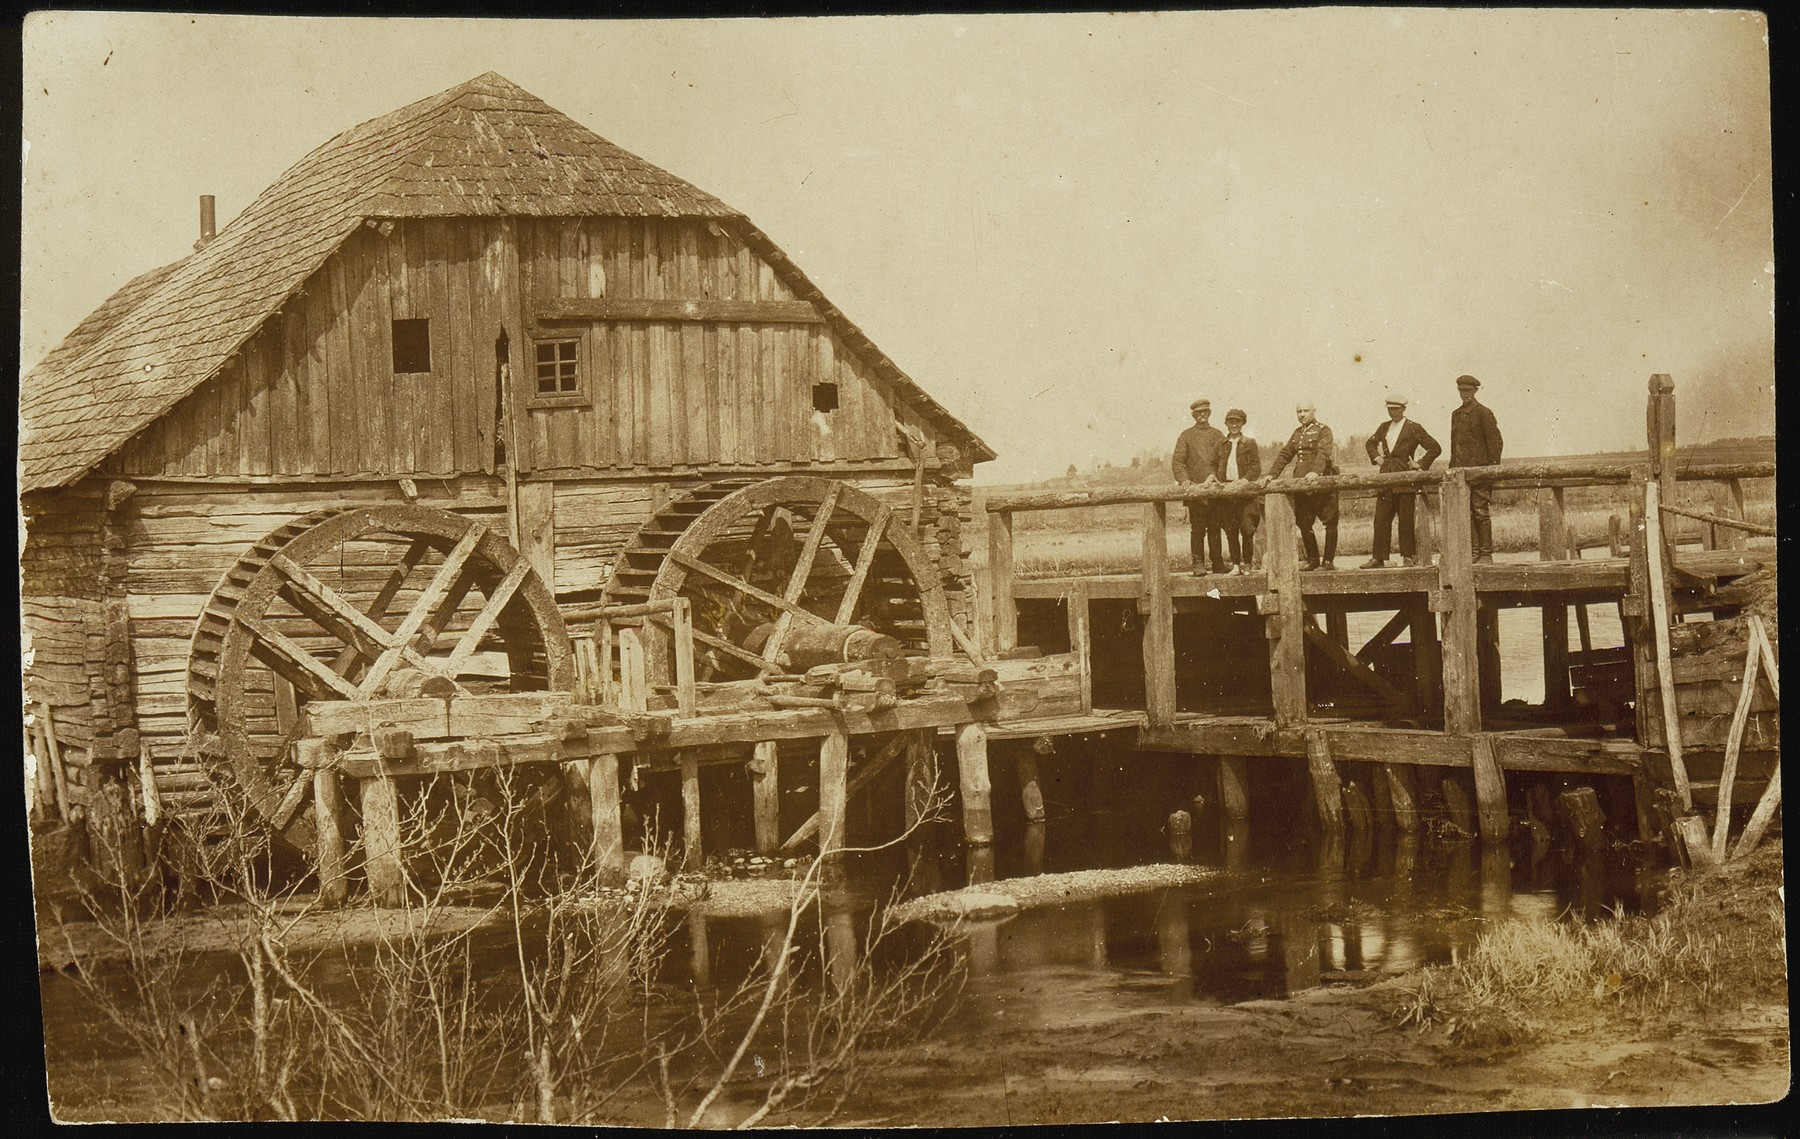 View of the old water mill in Eisiskes, where peasants and shtetl people milled their grain for centuries.